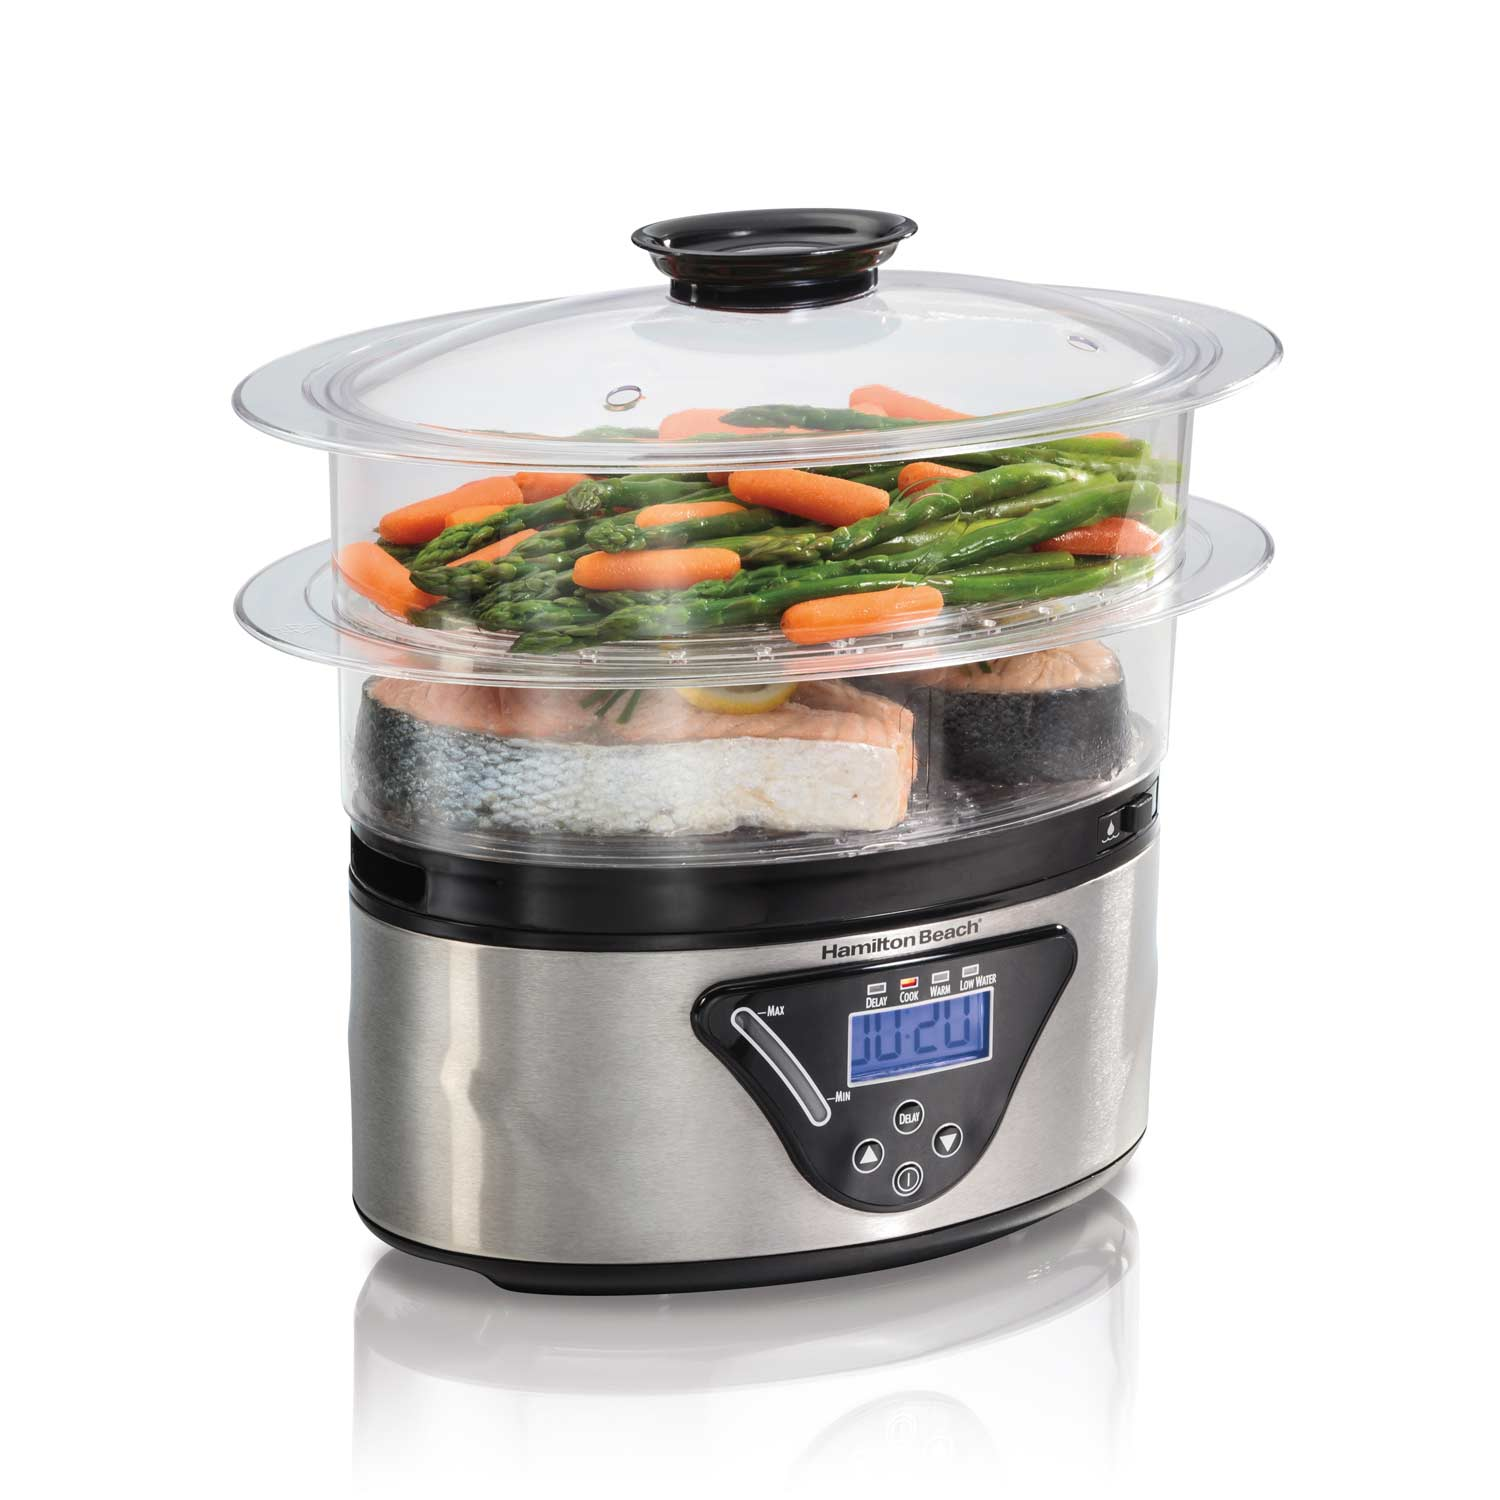 5.5 Quart Digital Steamer (37530Z)